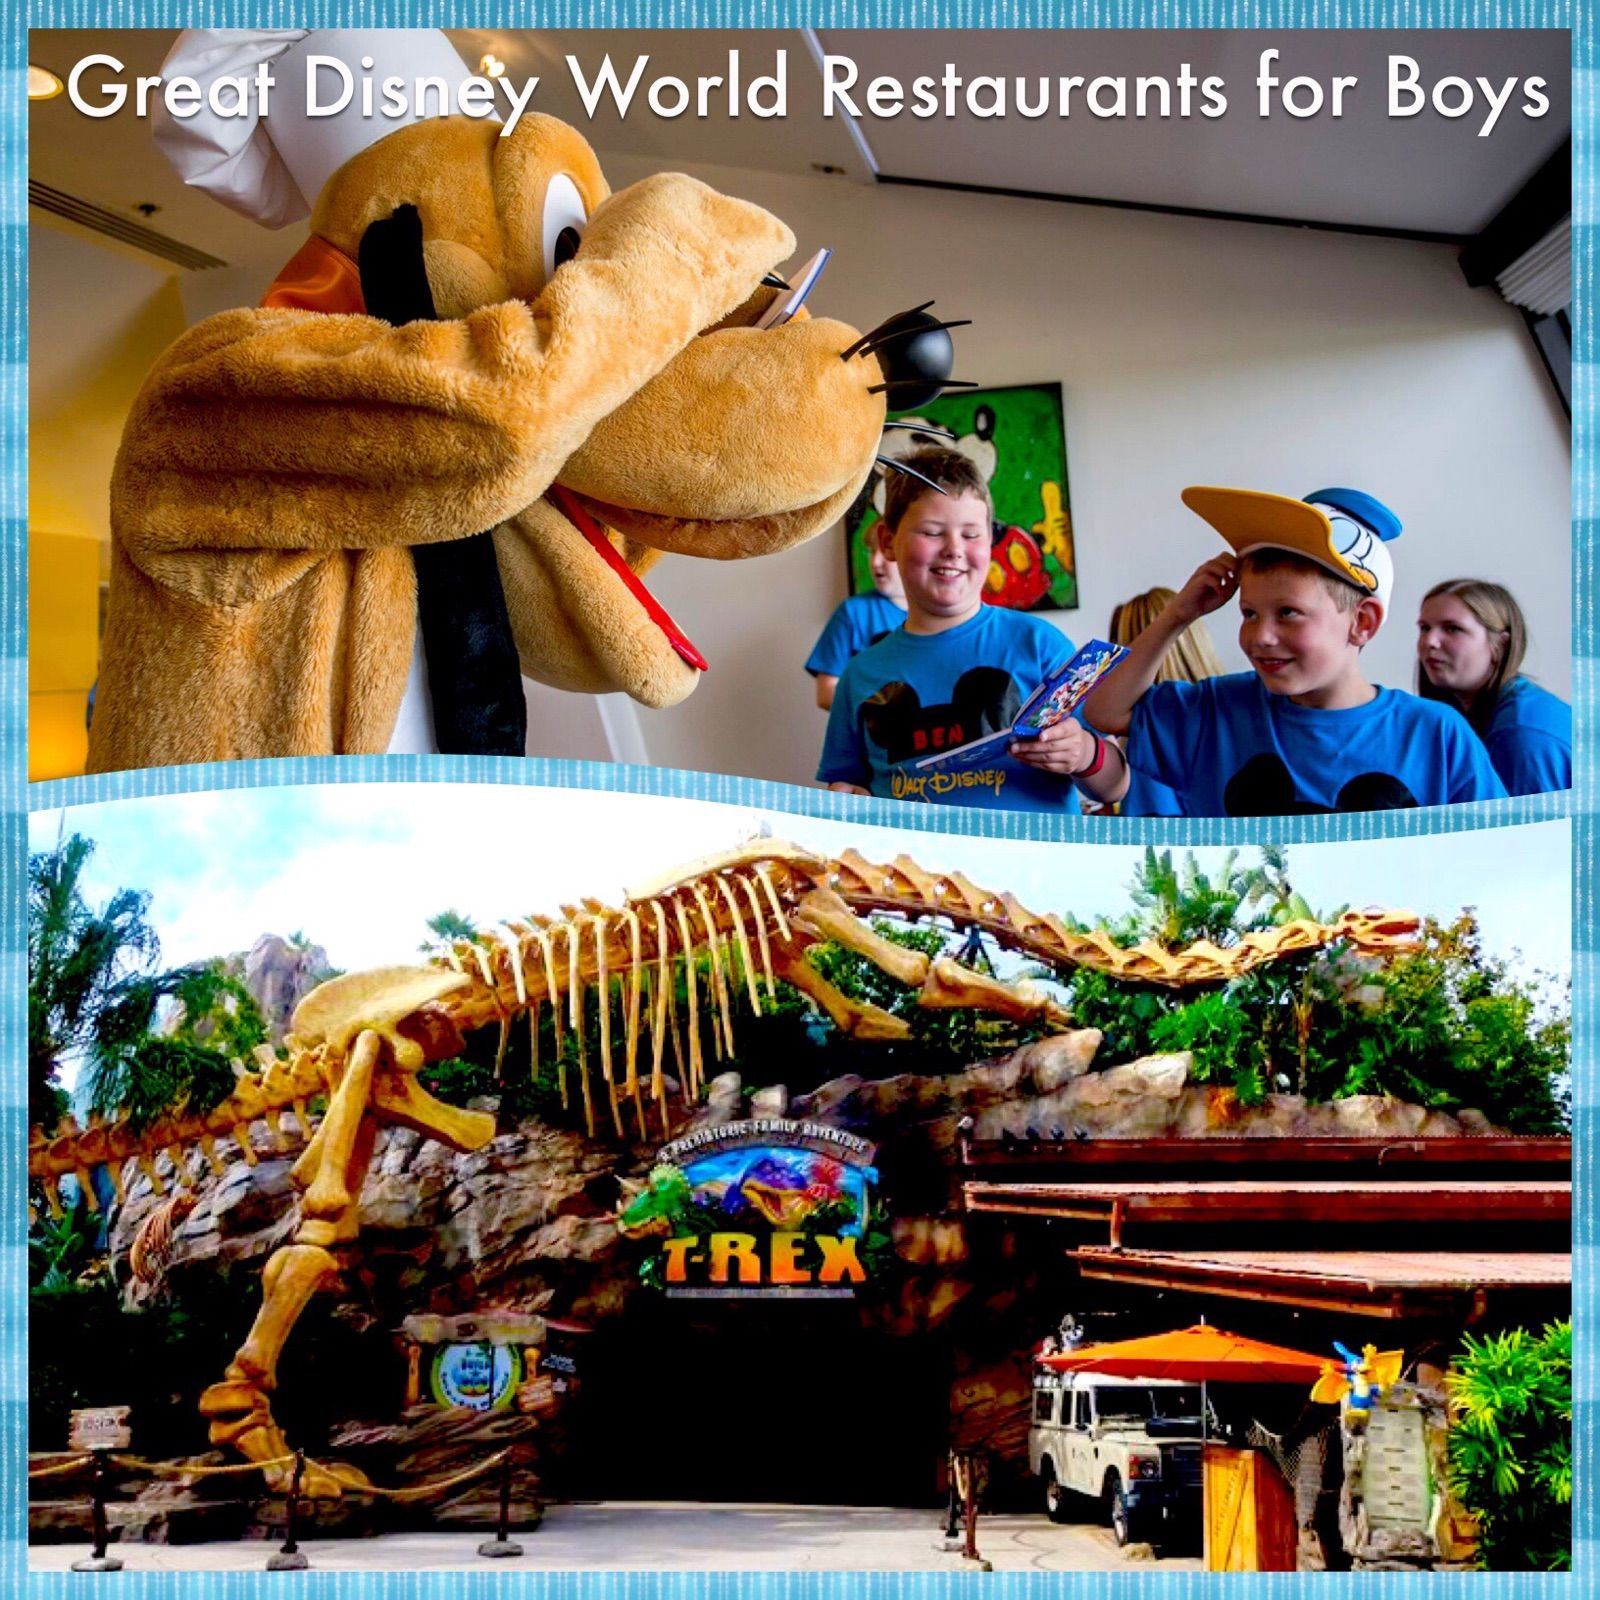 Great Disney World Restaurants and Dining Experiences for boys - includes character meals and fun dining locations.